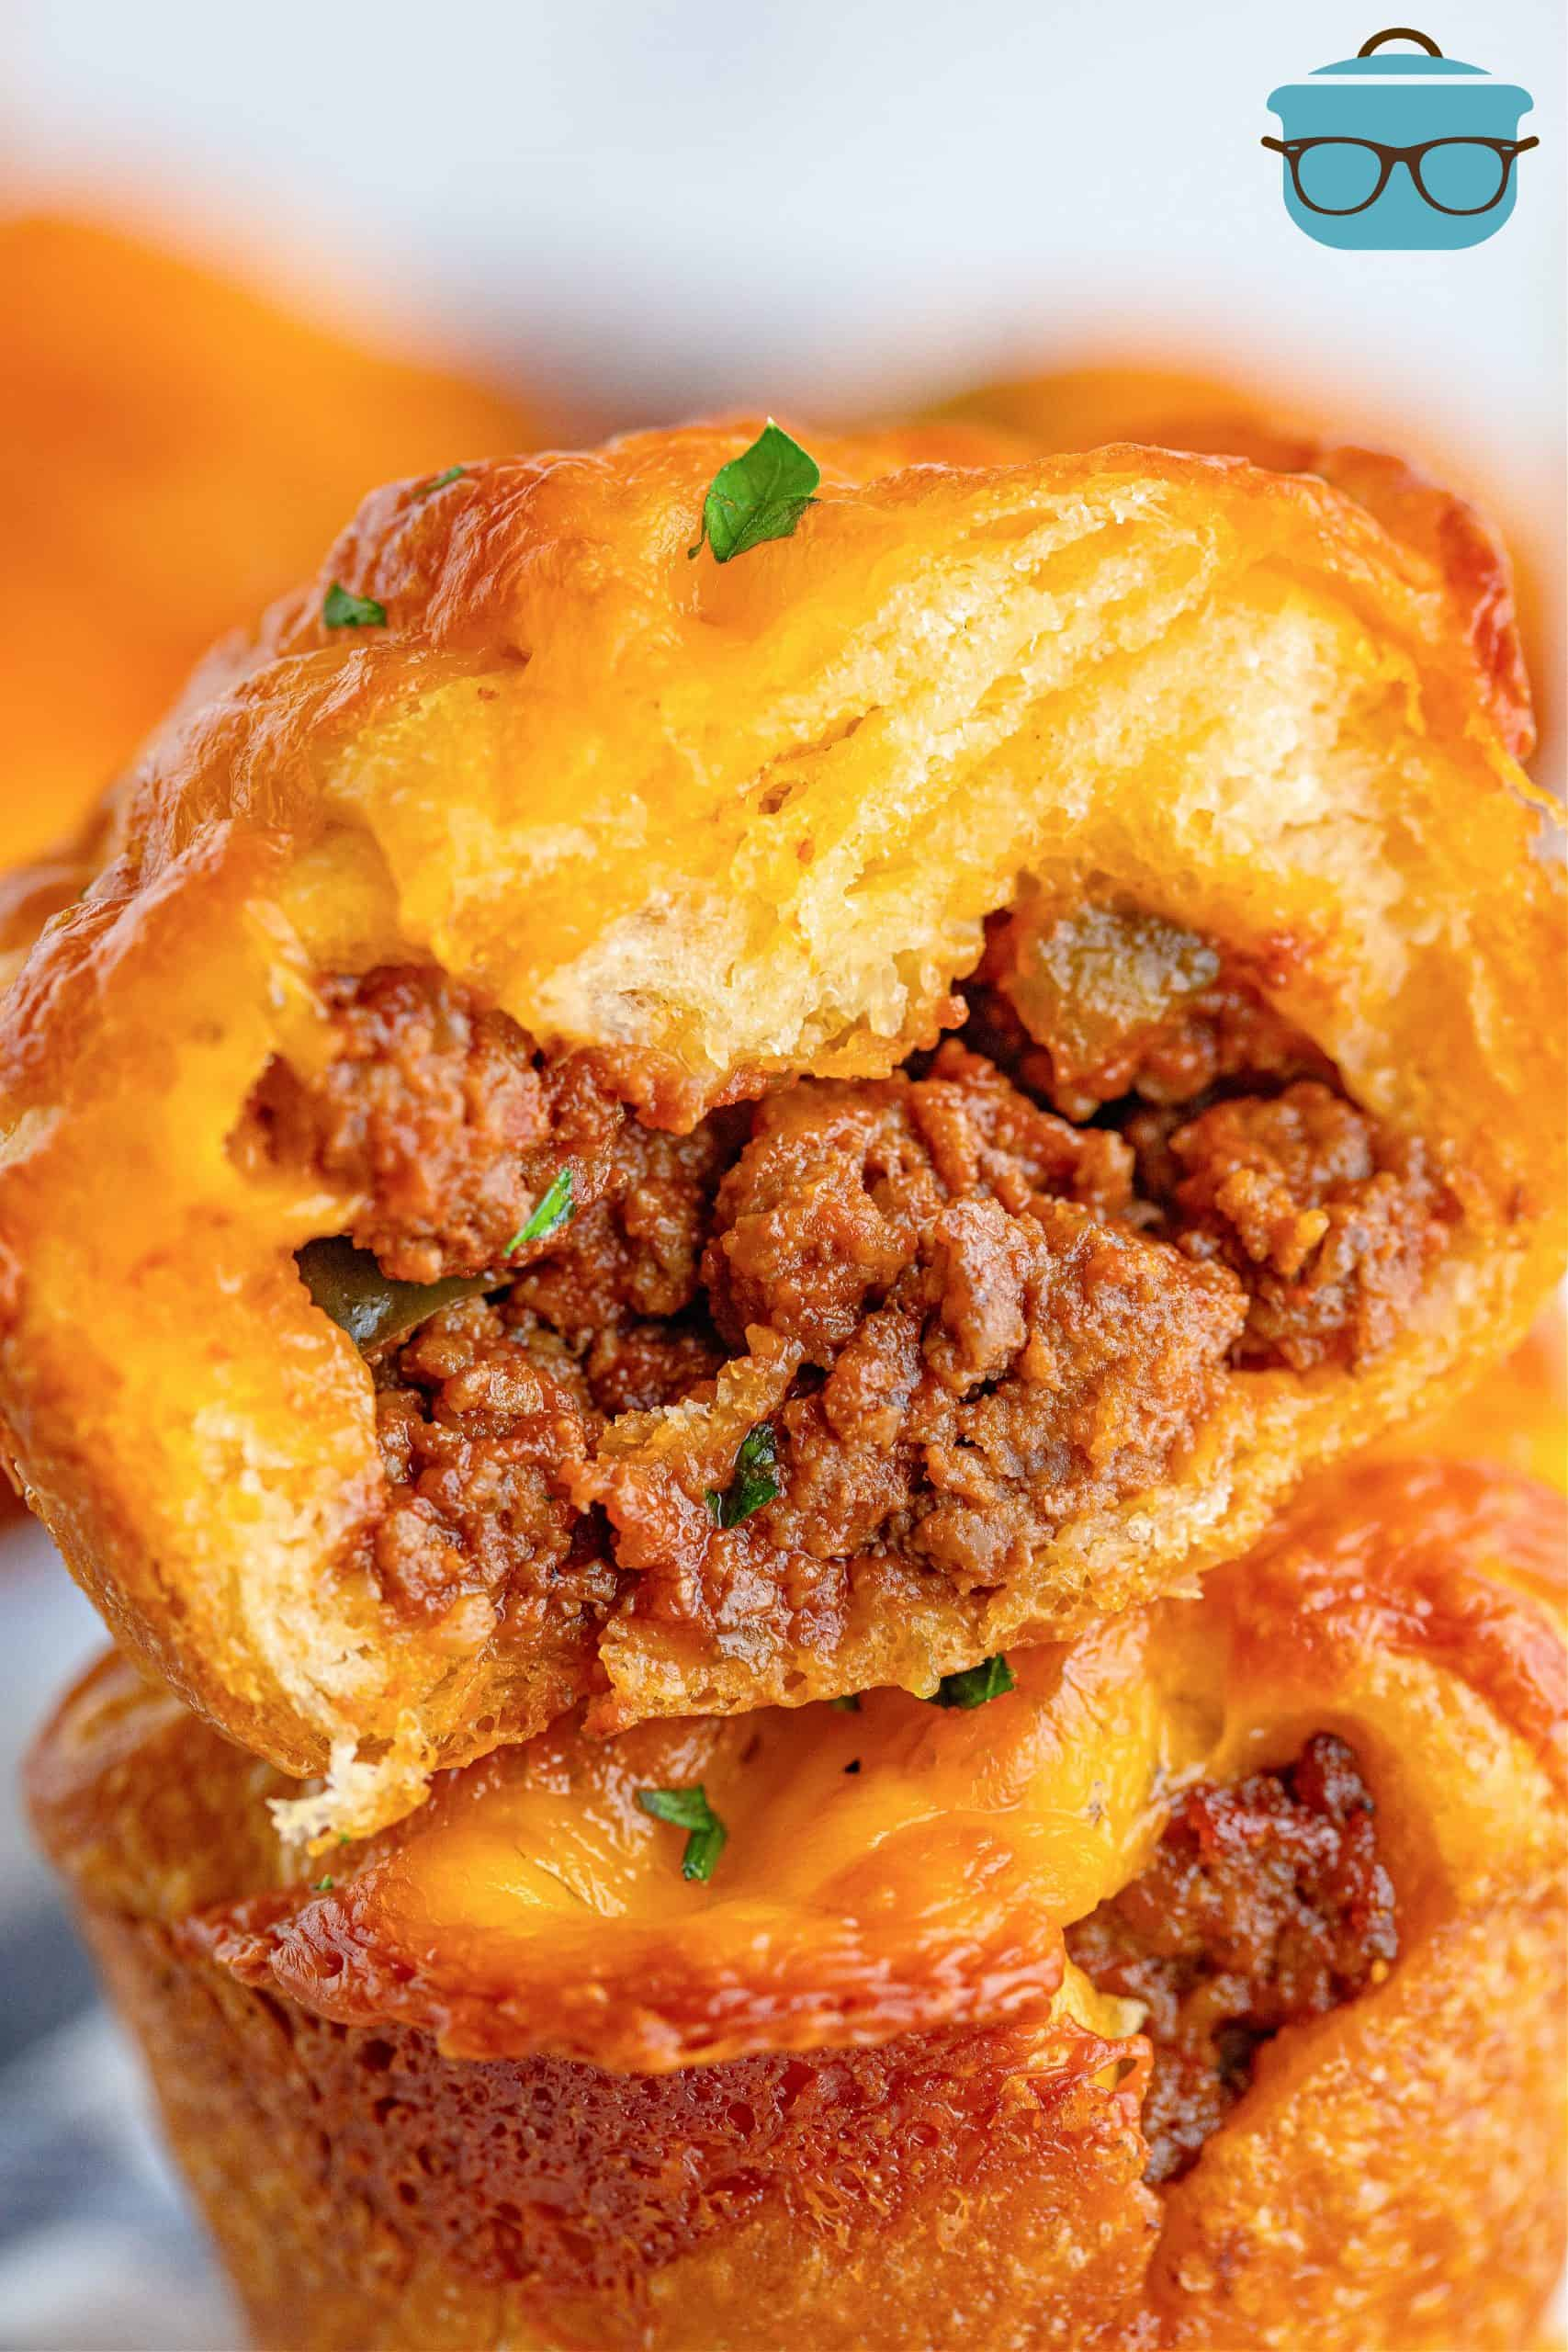 Close up image of on Sloppy Joe Cup cut open showing filling.